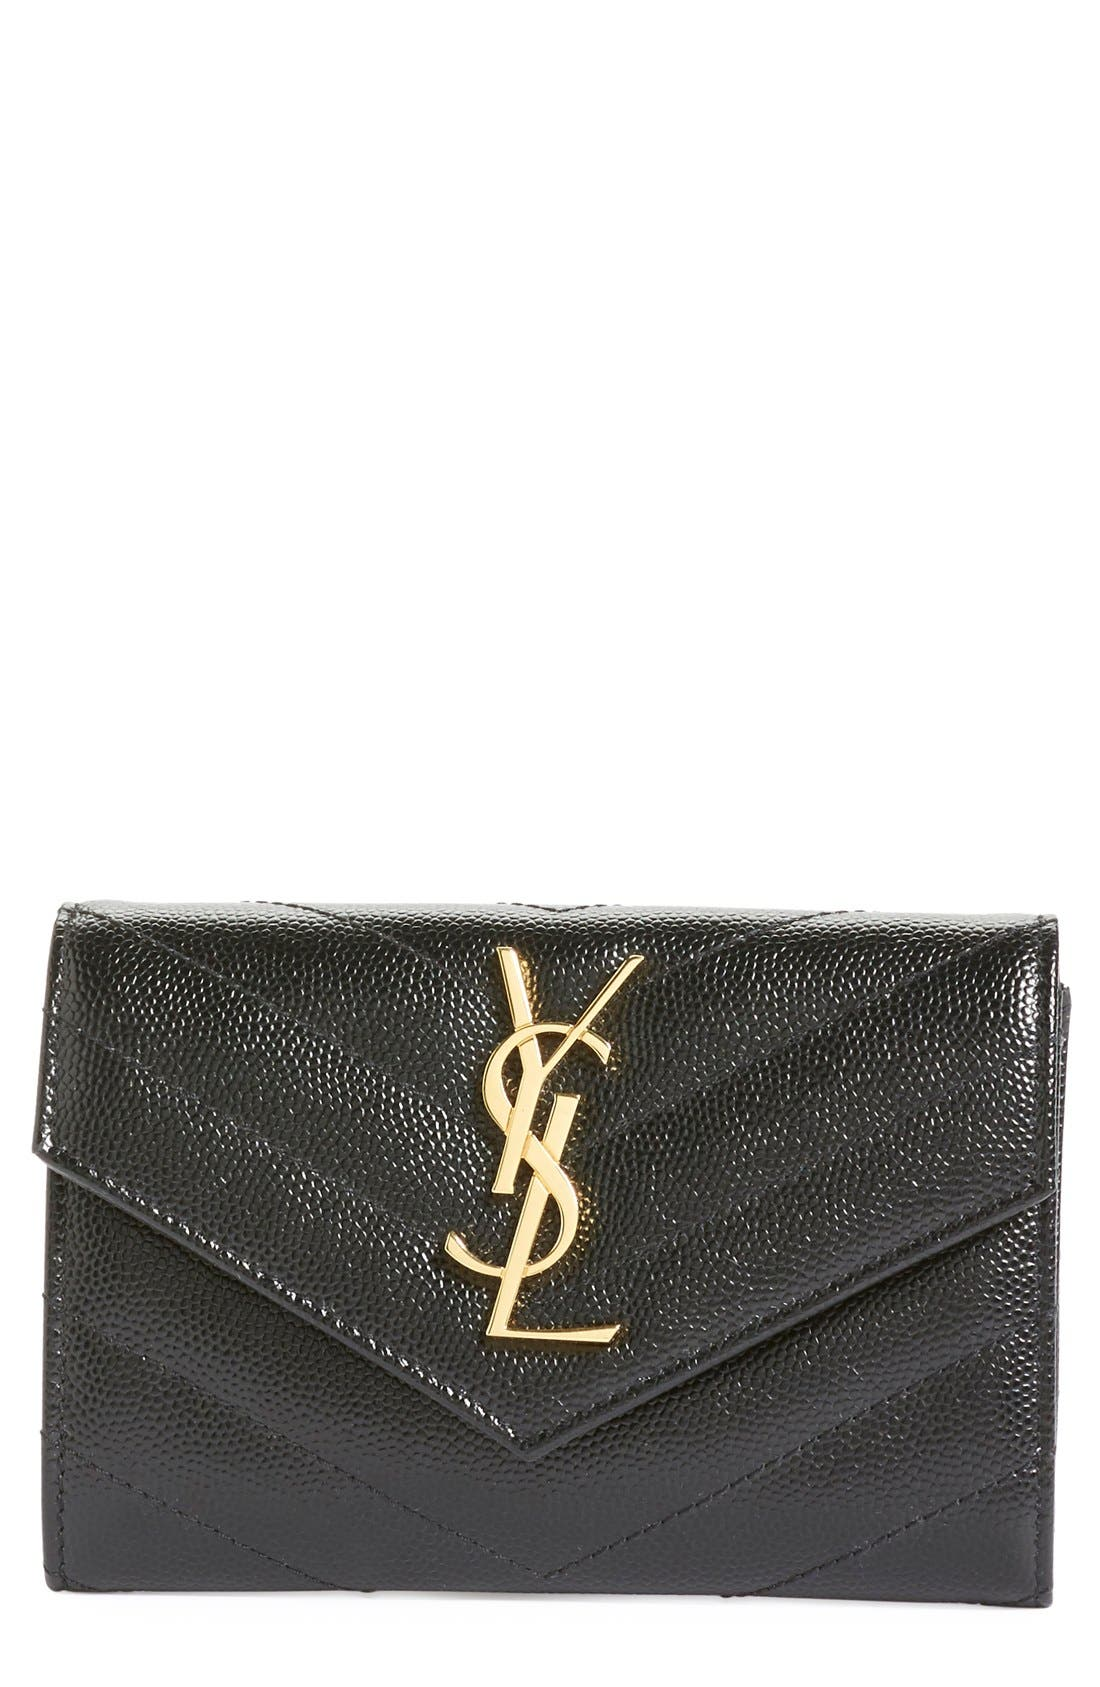 'Monogram' Quilted Leather French Wallet,                             Main thumbnail 1, color,                             Noir